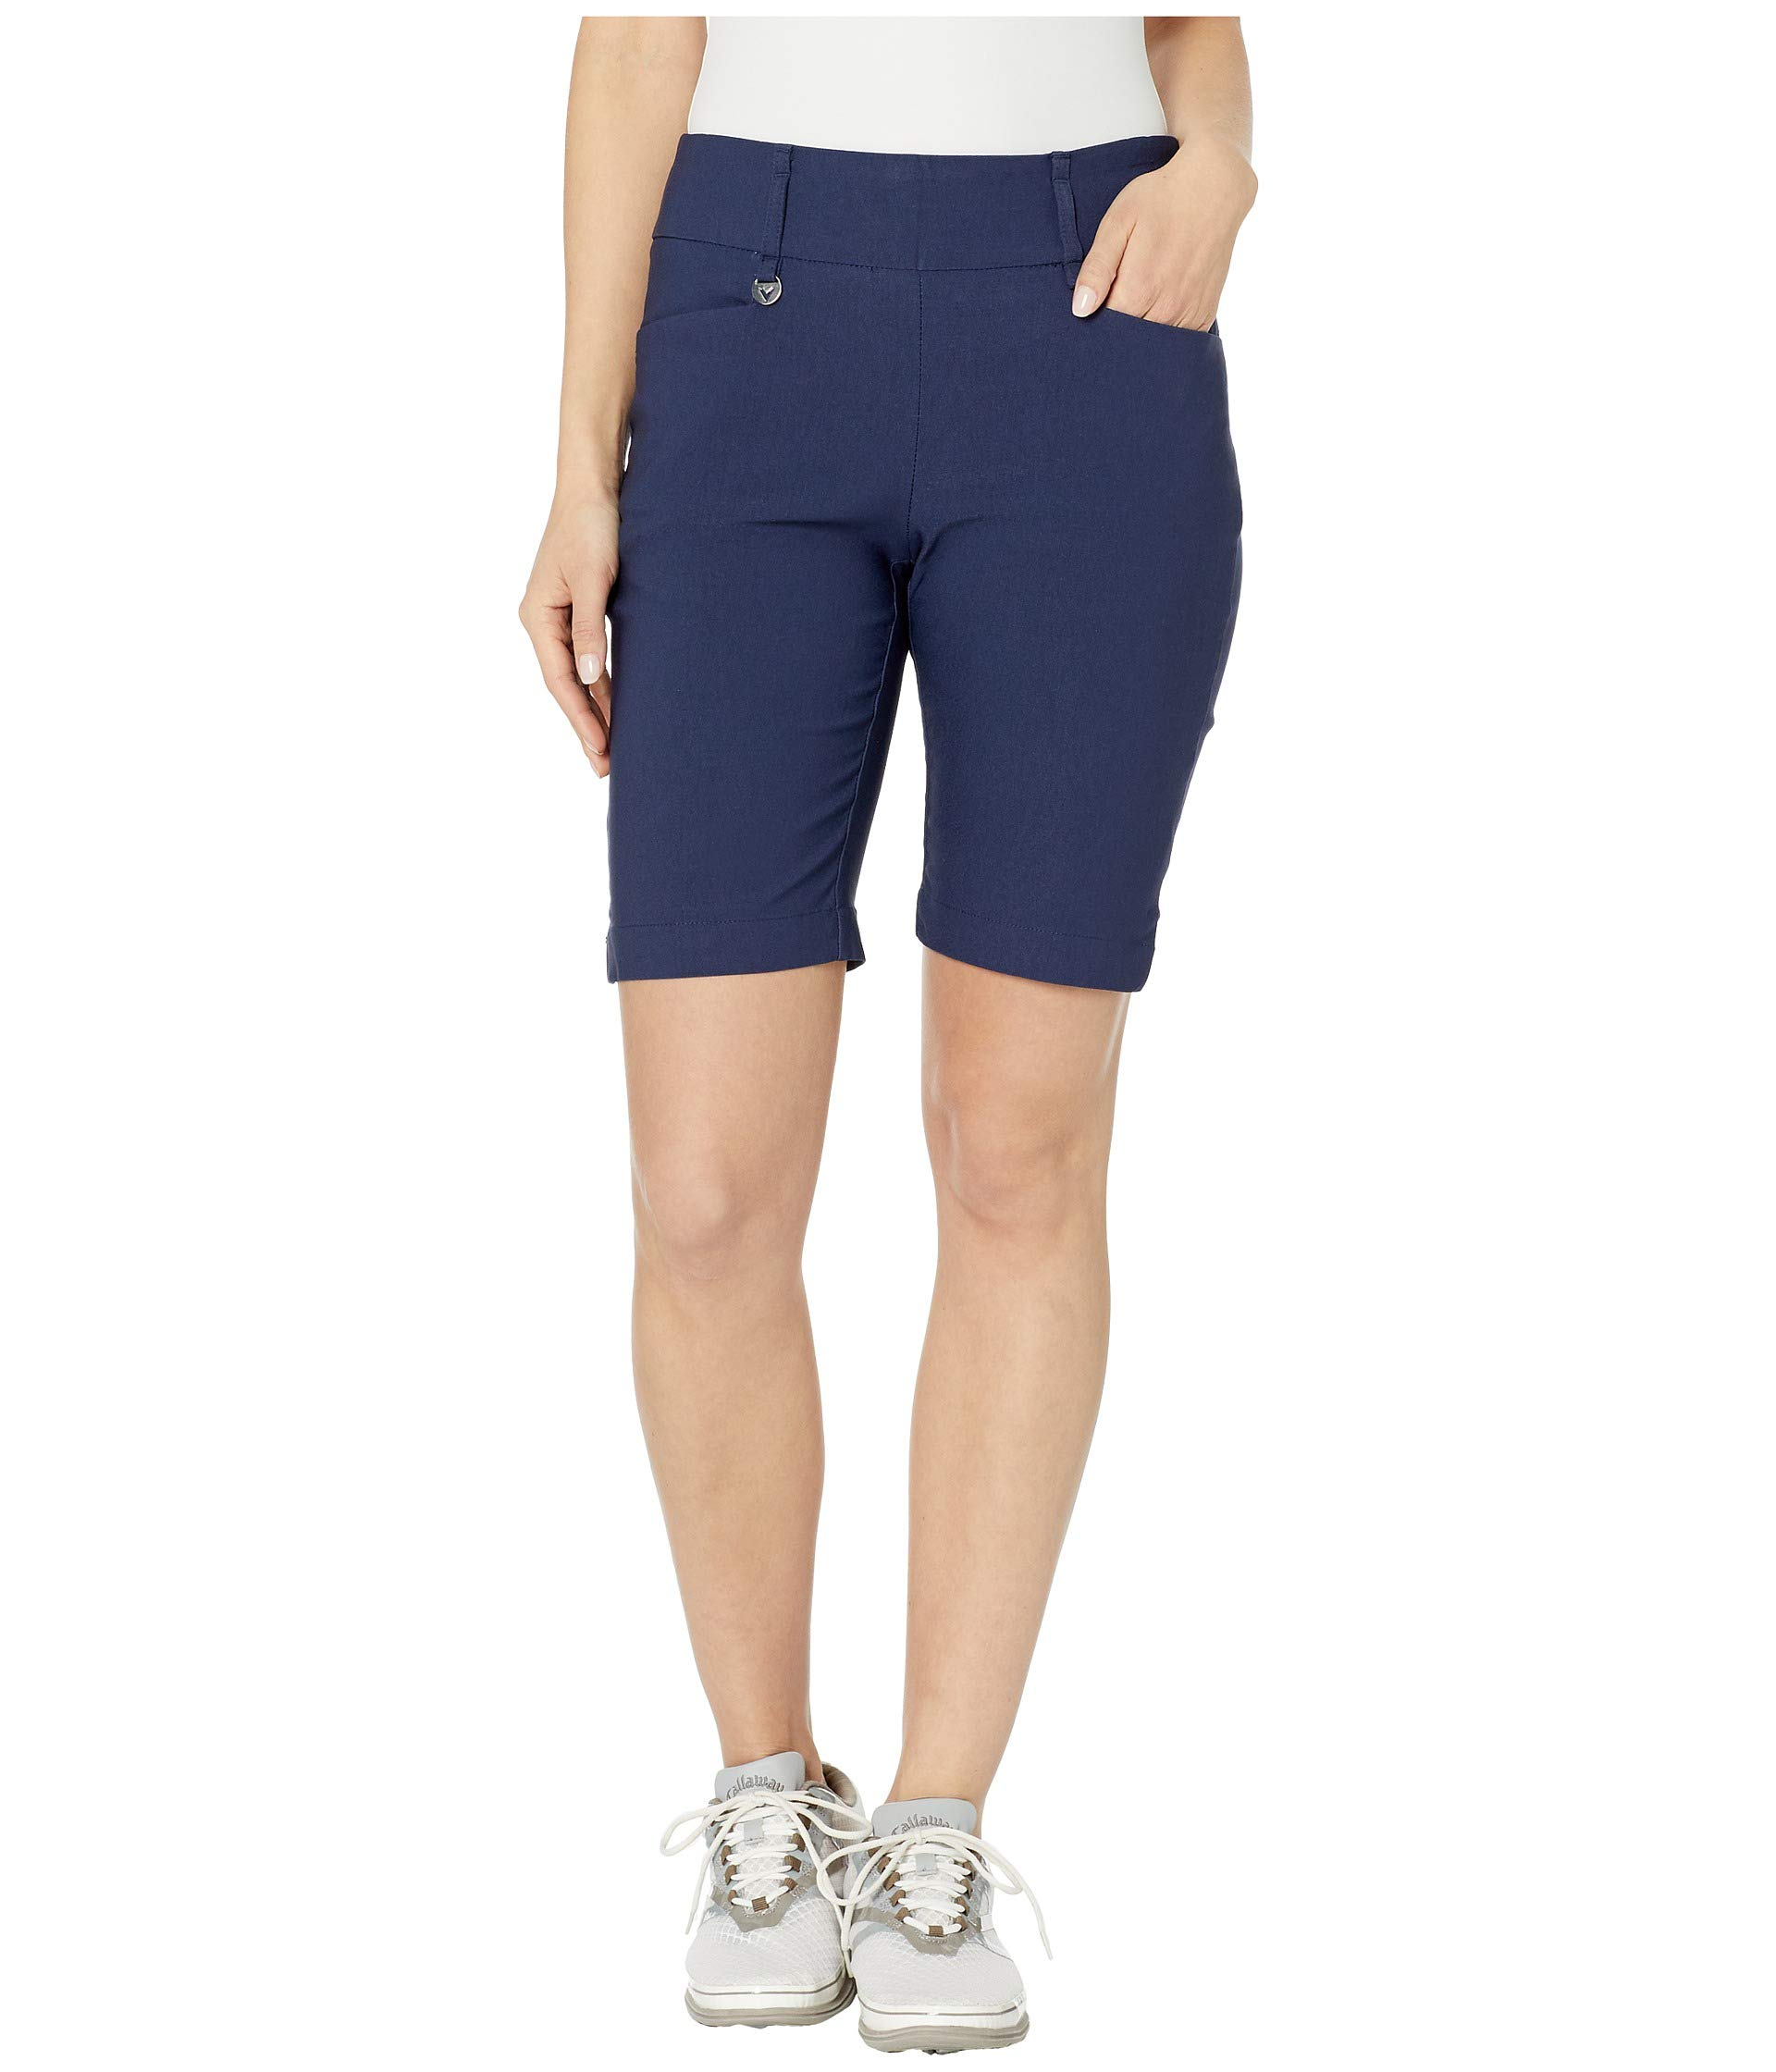 Callaway Performance Flat Front 9.5'' Inseam Short, Solid Peacoat, X-Large by Callaway